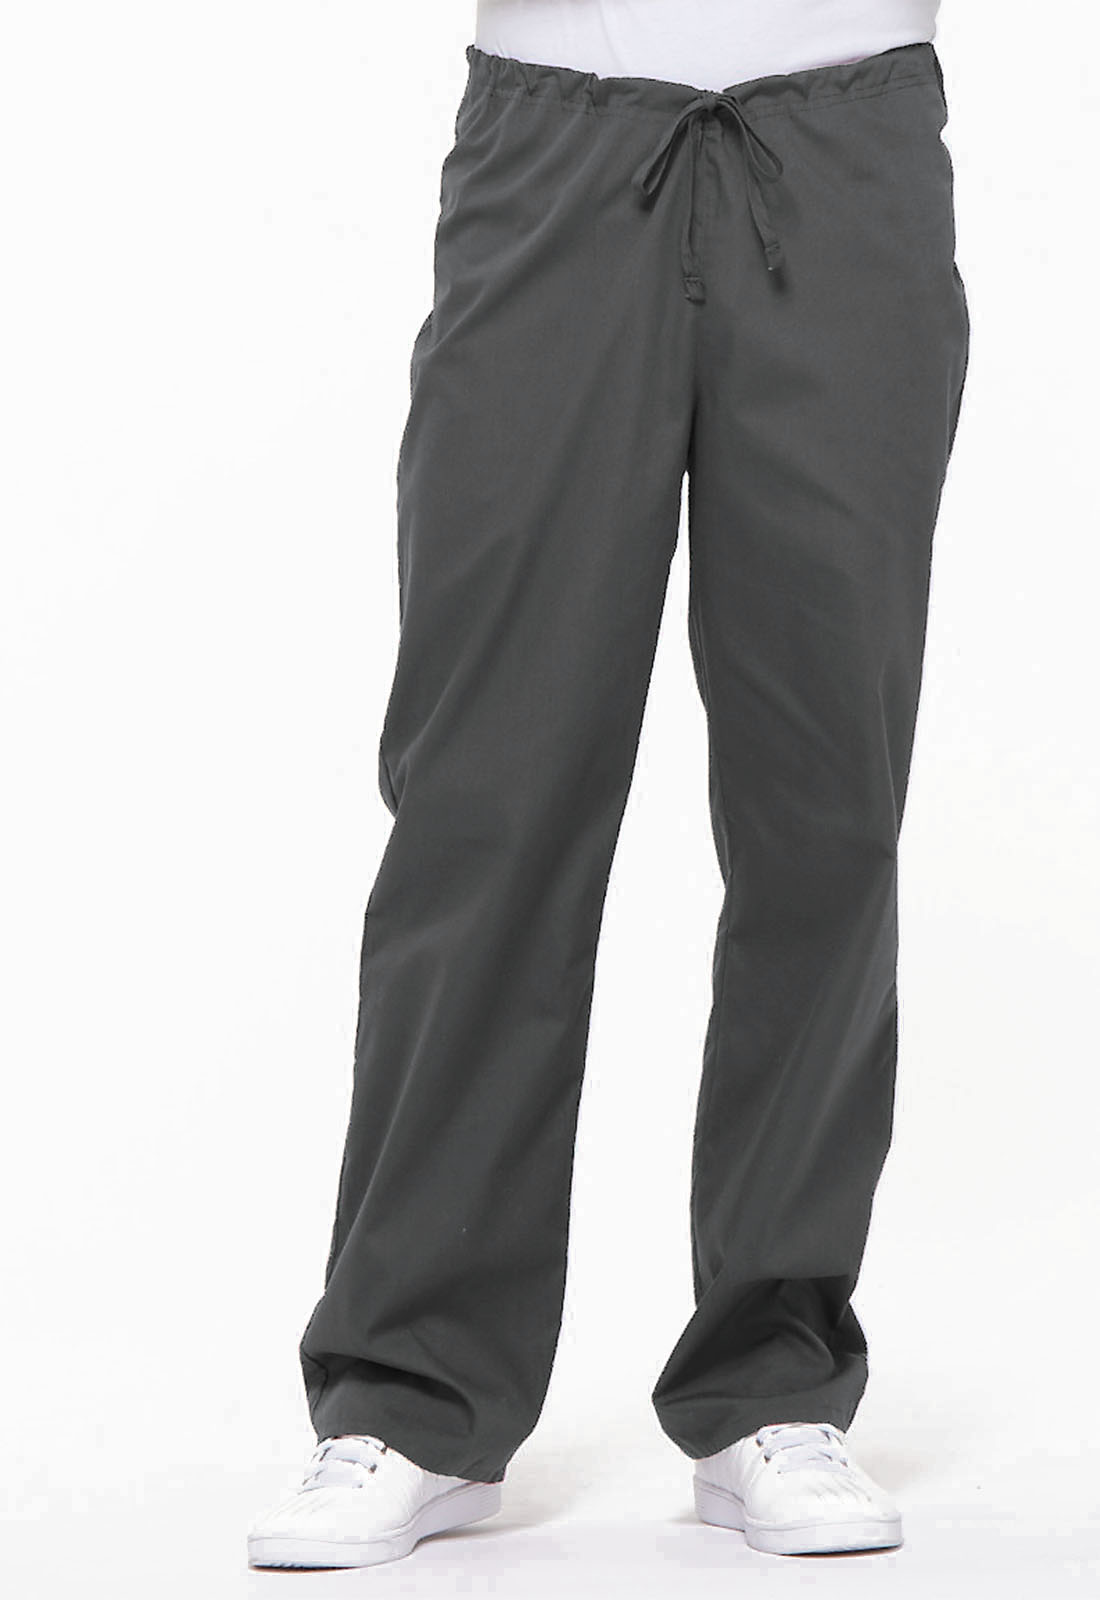 6d57d91a991 Dickies EDS Signature Unisex Drawstring Pant in Pewter from Dickies ...